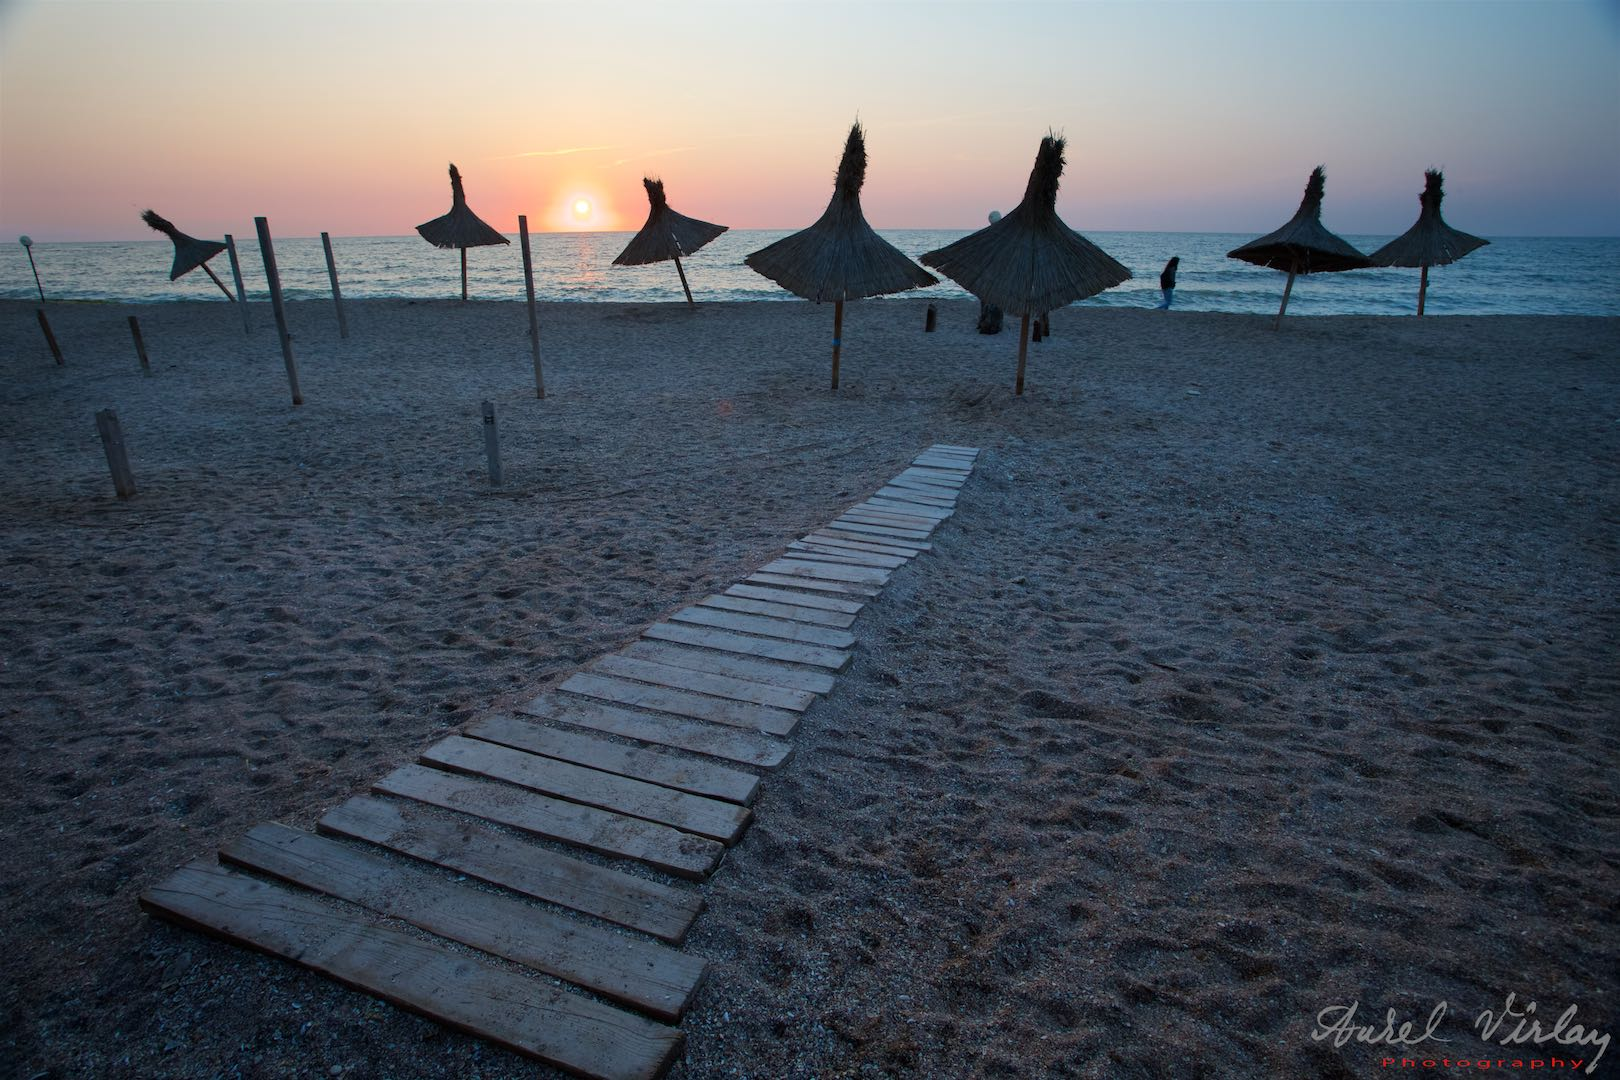 Stairs to Sun. Landscape photography at *Beach of Book* Vama Veche.